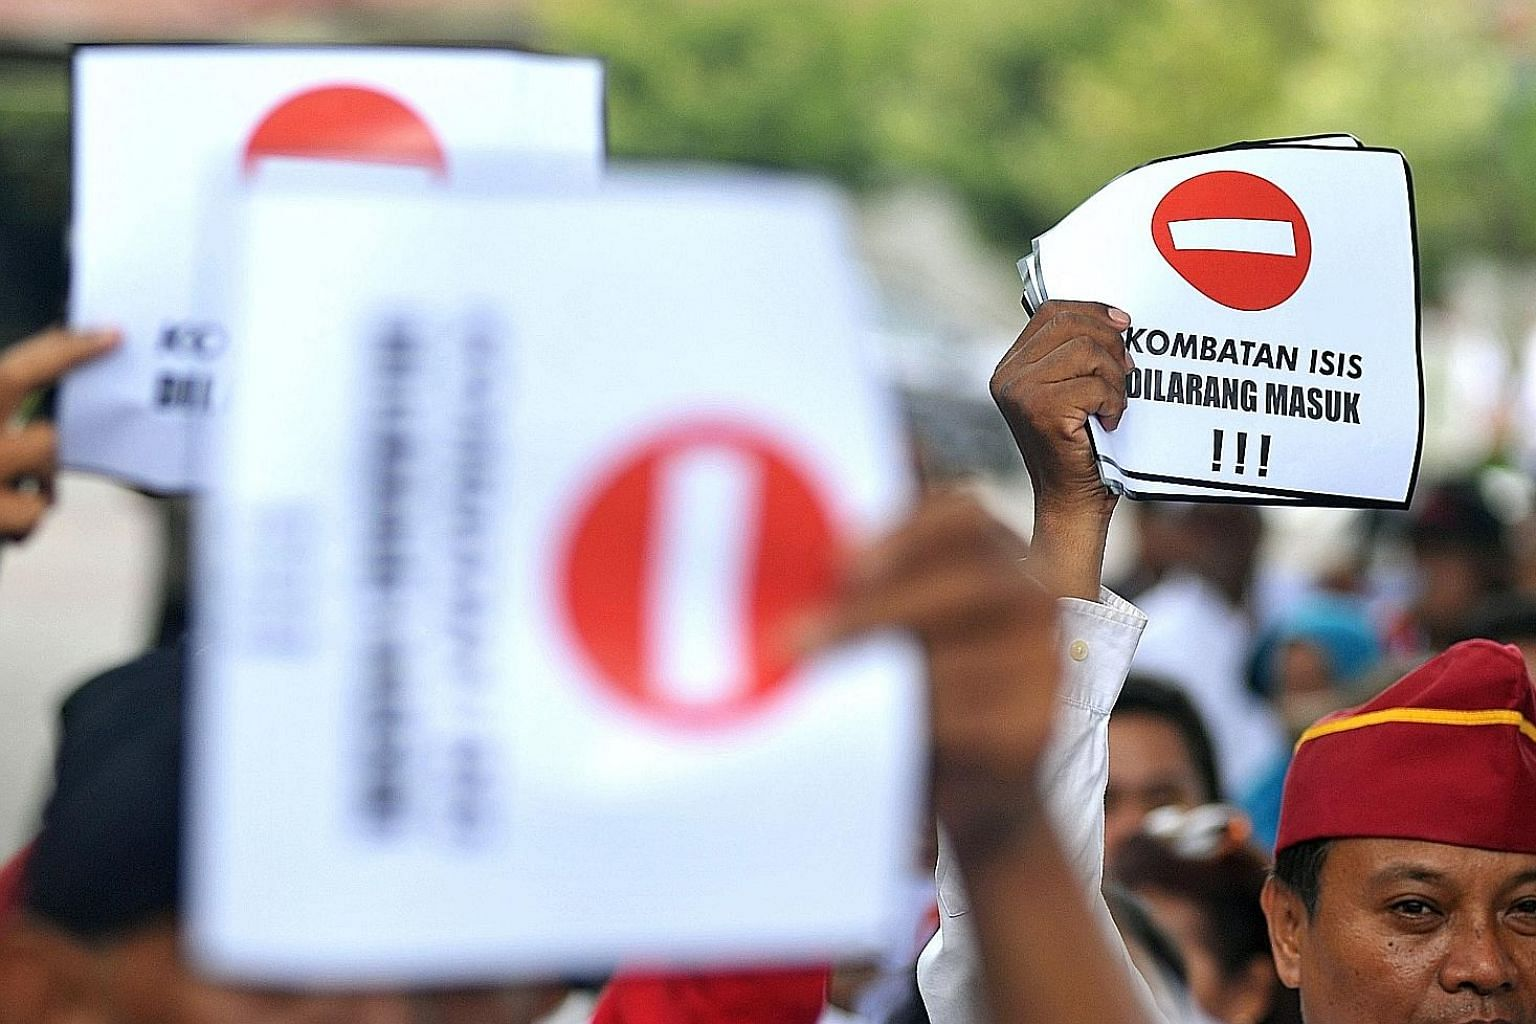 """Protesters with signs that say """"No entry for ISIS combatants"""" at a rally against the repatriation of Islamic State in Iraq and Syria fighters in Yogyakarta last Friday. Indonesia said on Tuesday that it will not repatriate citizens who had joined the"""